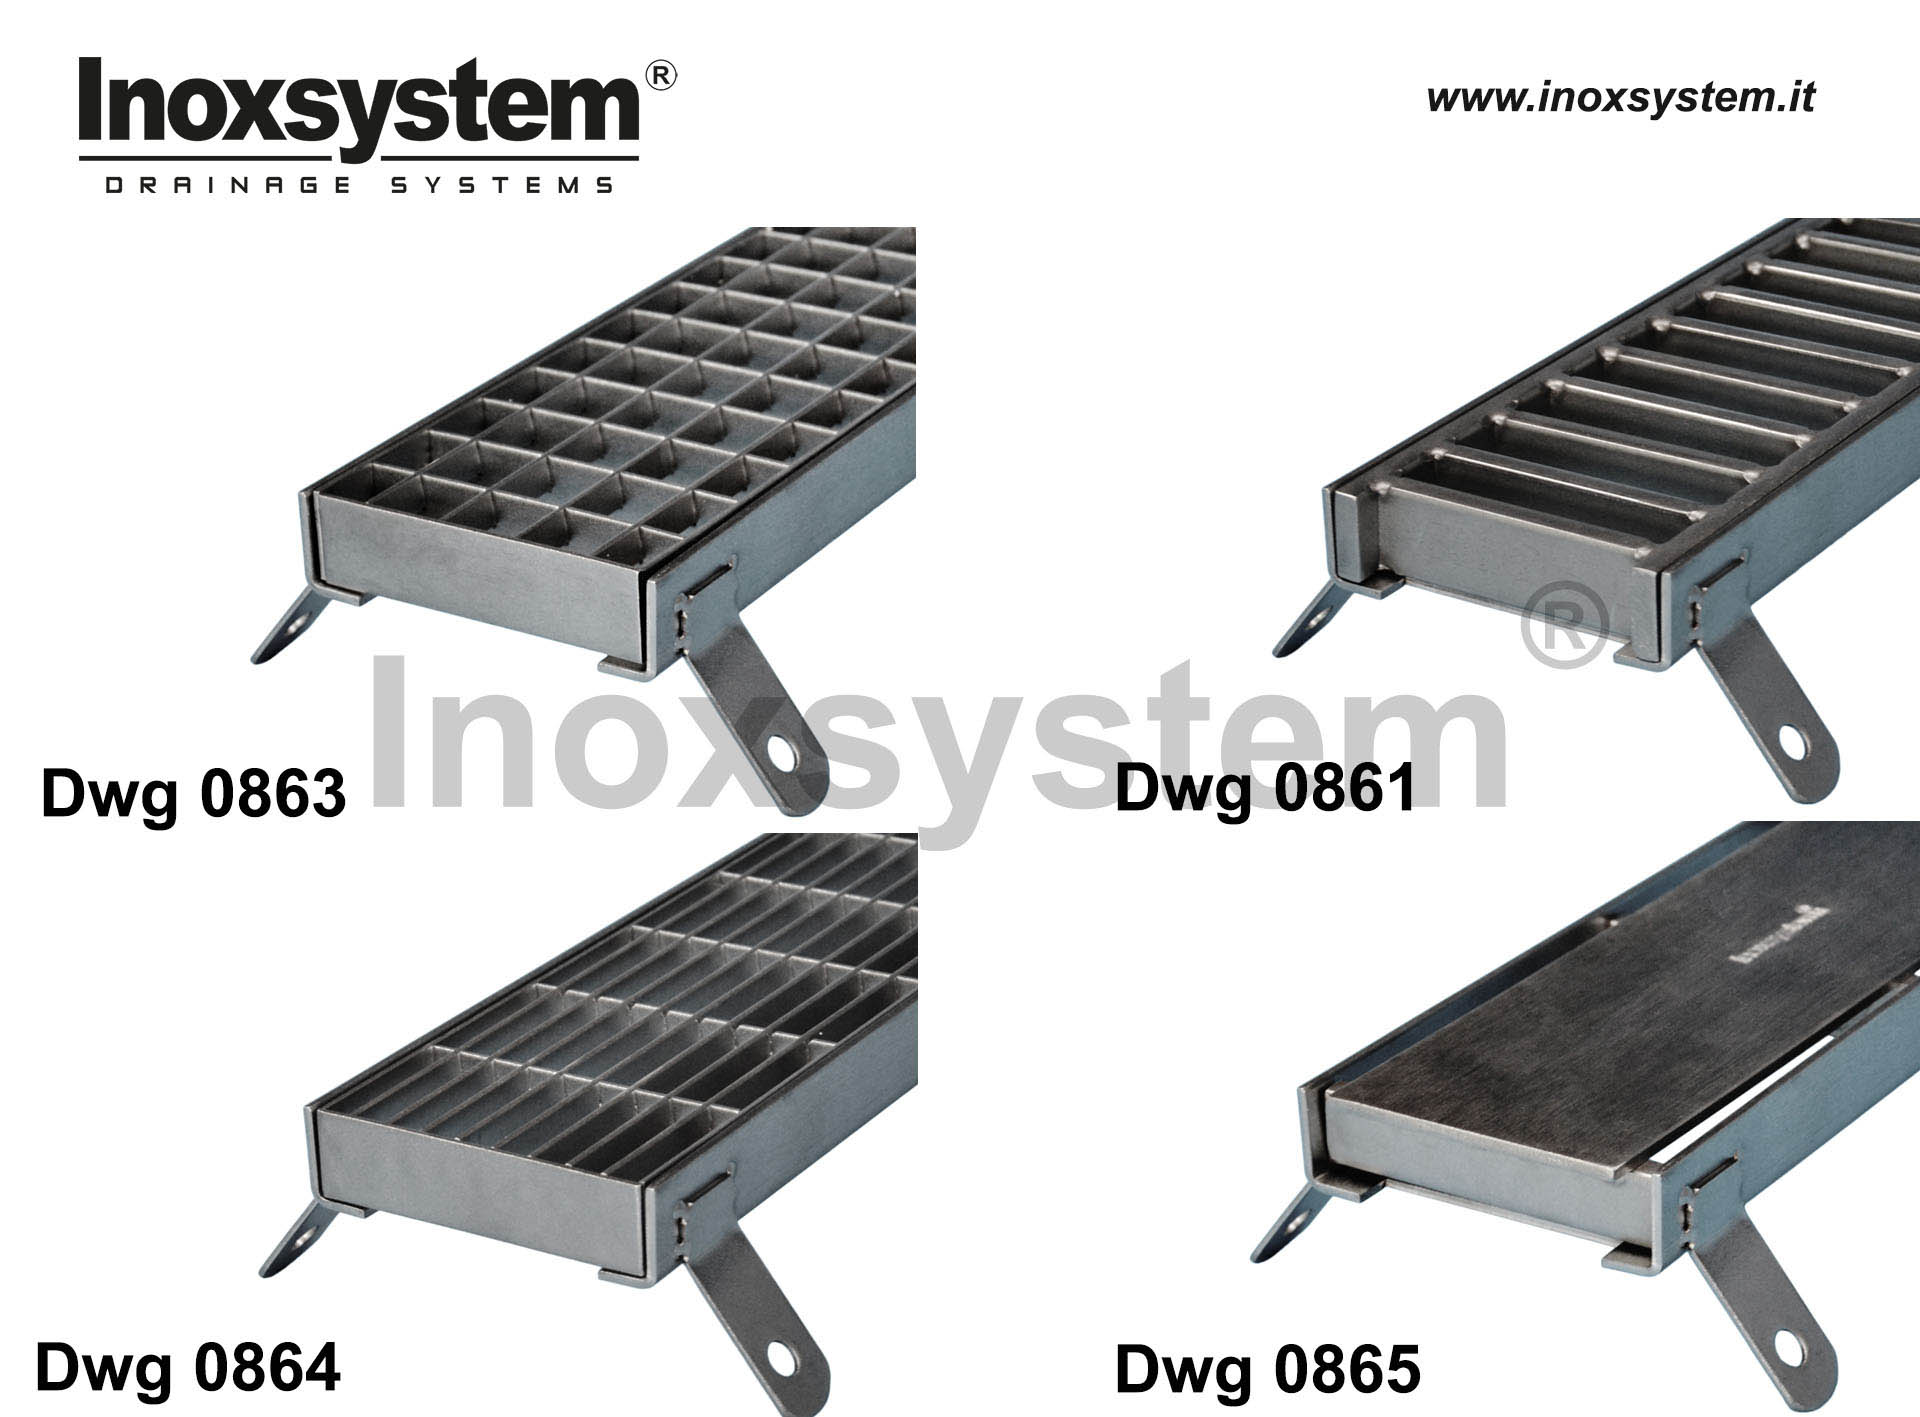 Accessories for gratings stainless steel sub frame for inspection gratings